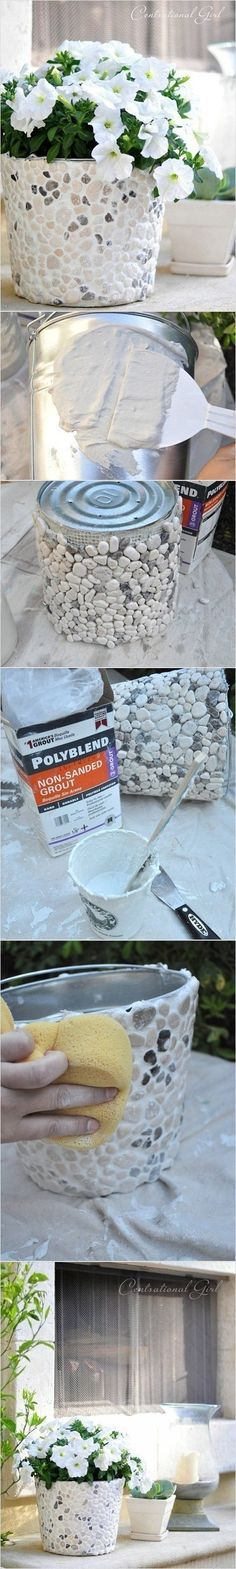 Old paint can to pebble planter. www.BlueRainbowDesign.com